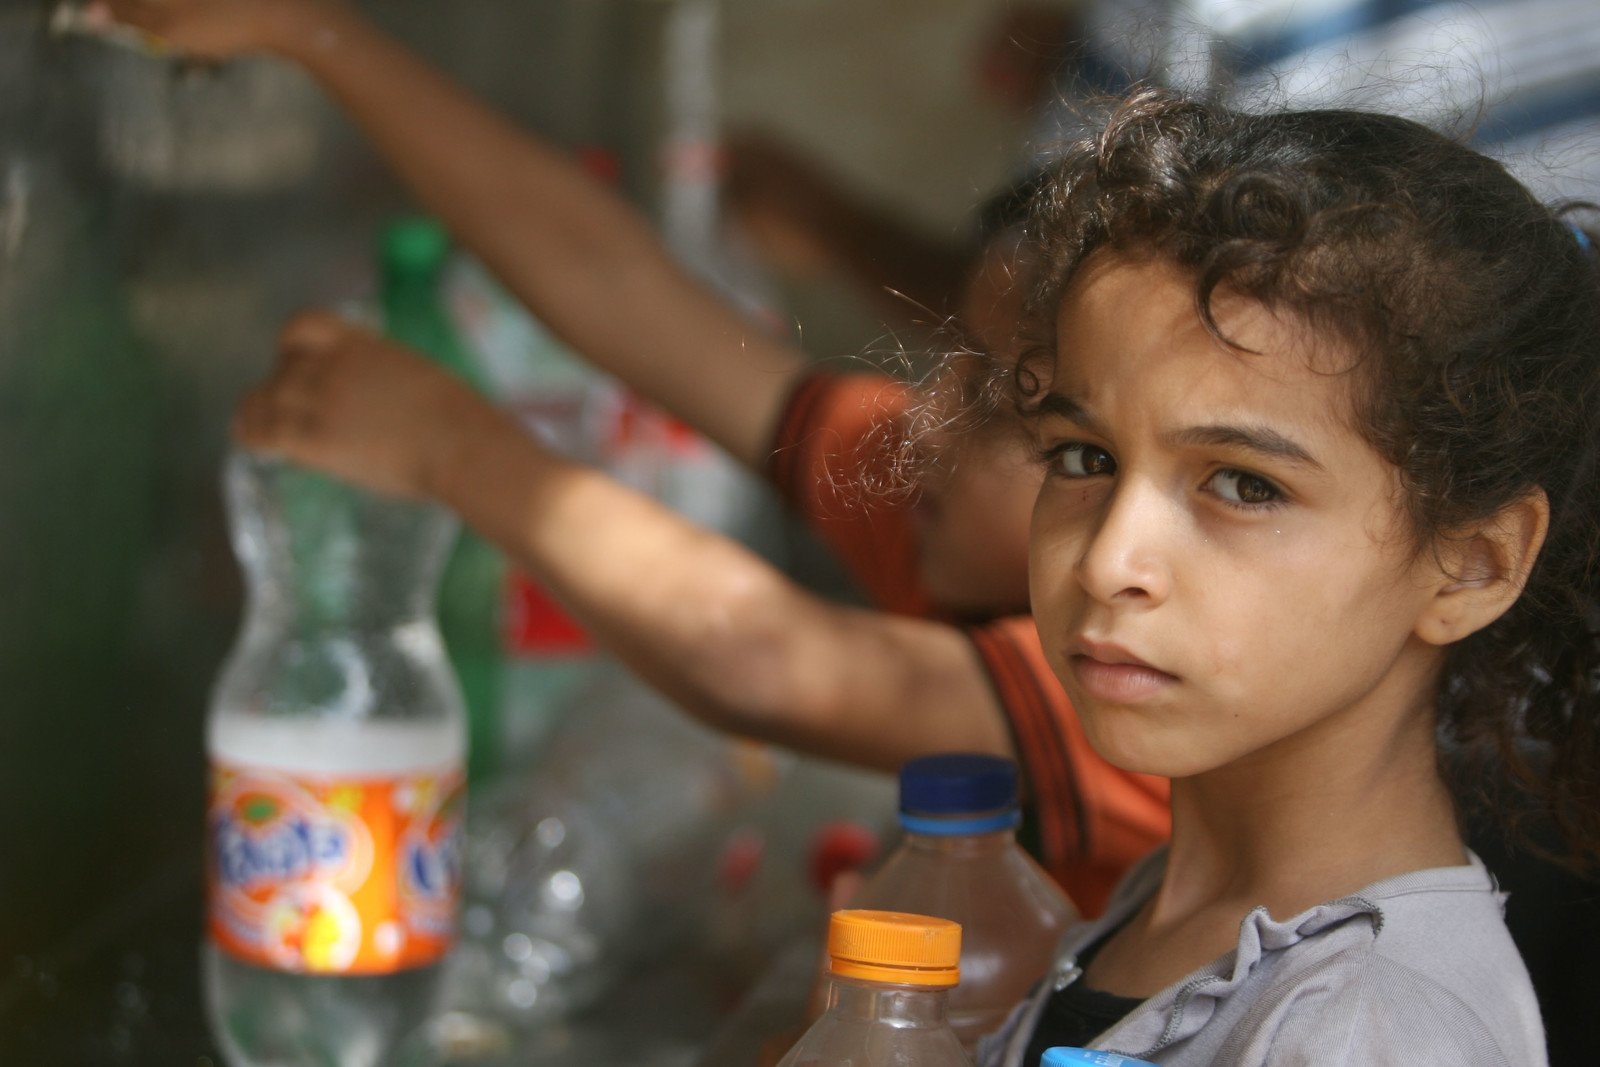 Children in Rafah, southern Gaza, collect water from one of the working public taps. Numerous water systems and wells have been badly damaged in the airstrikes.